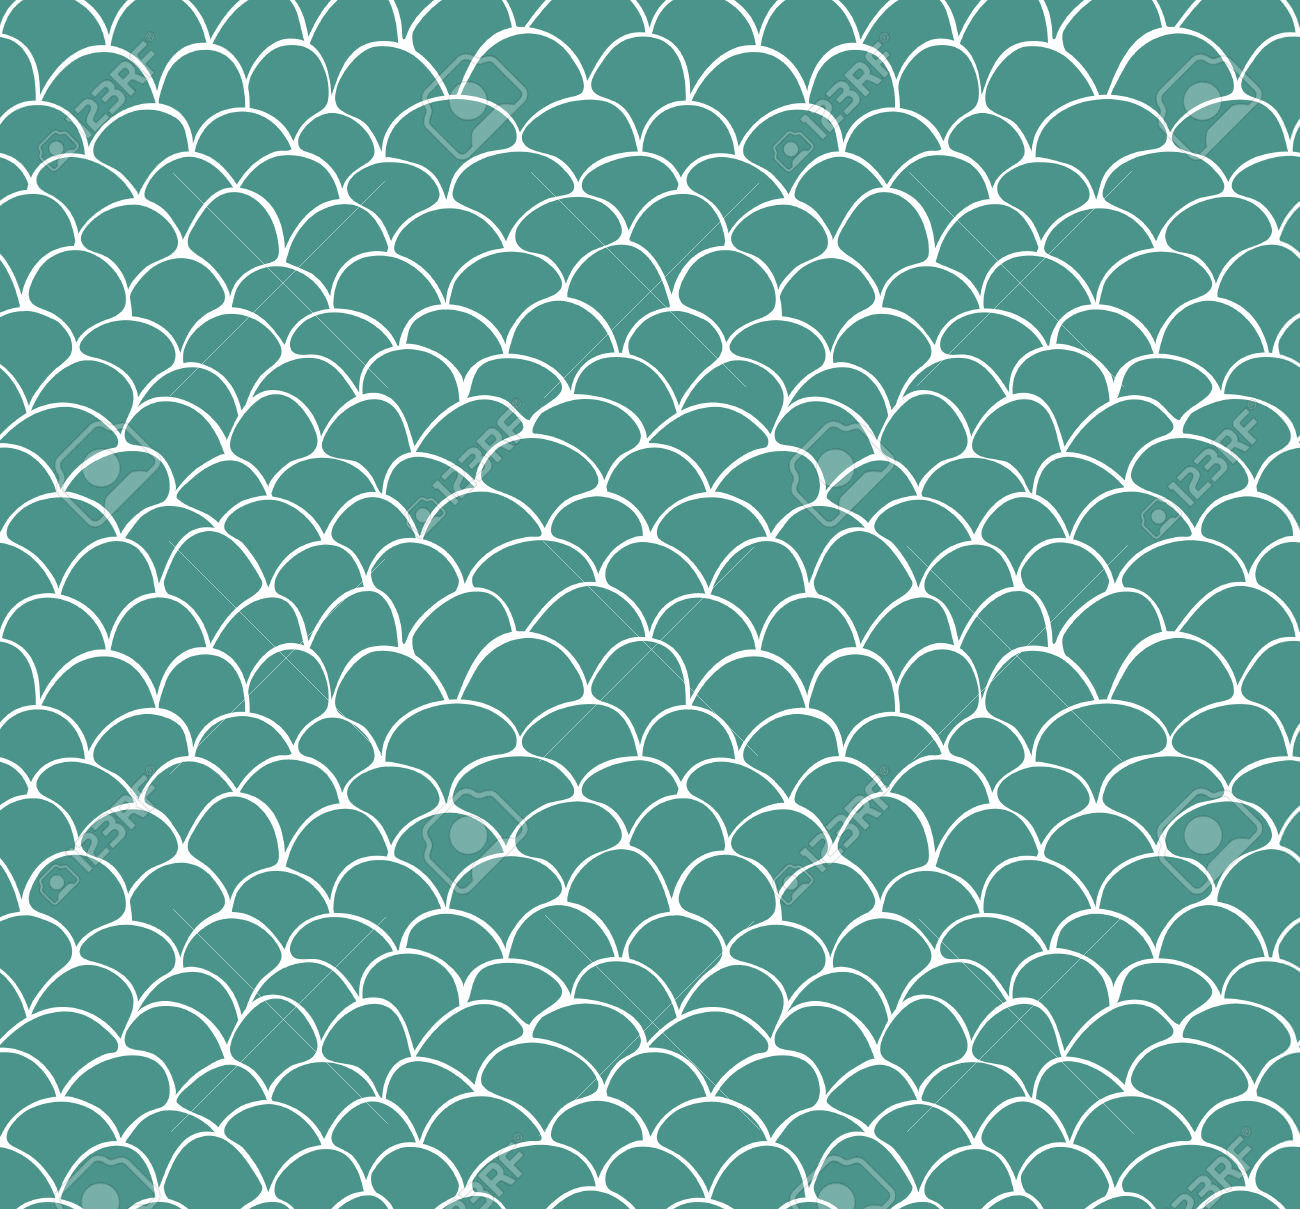 hand drawn fish scale pattern